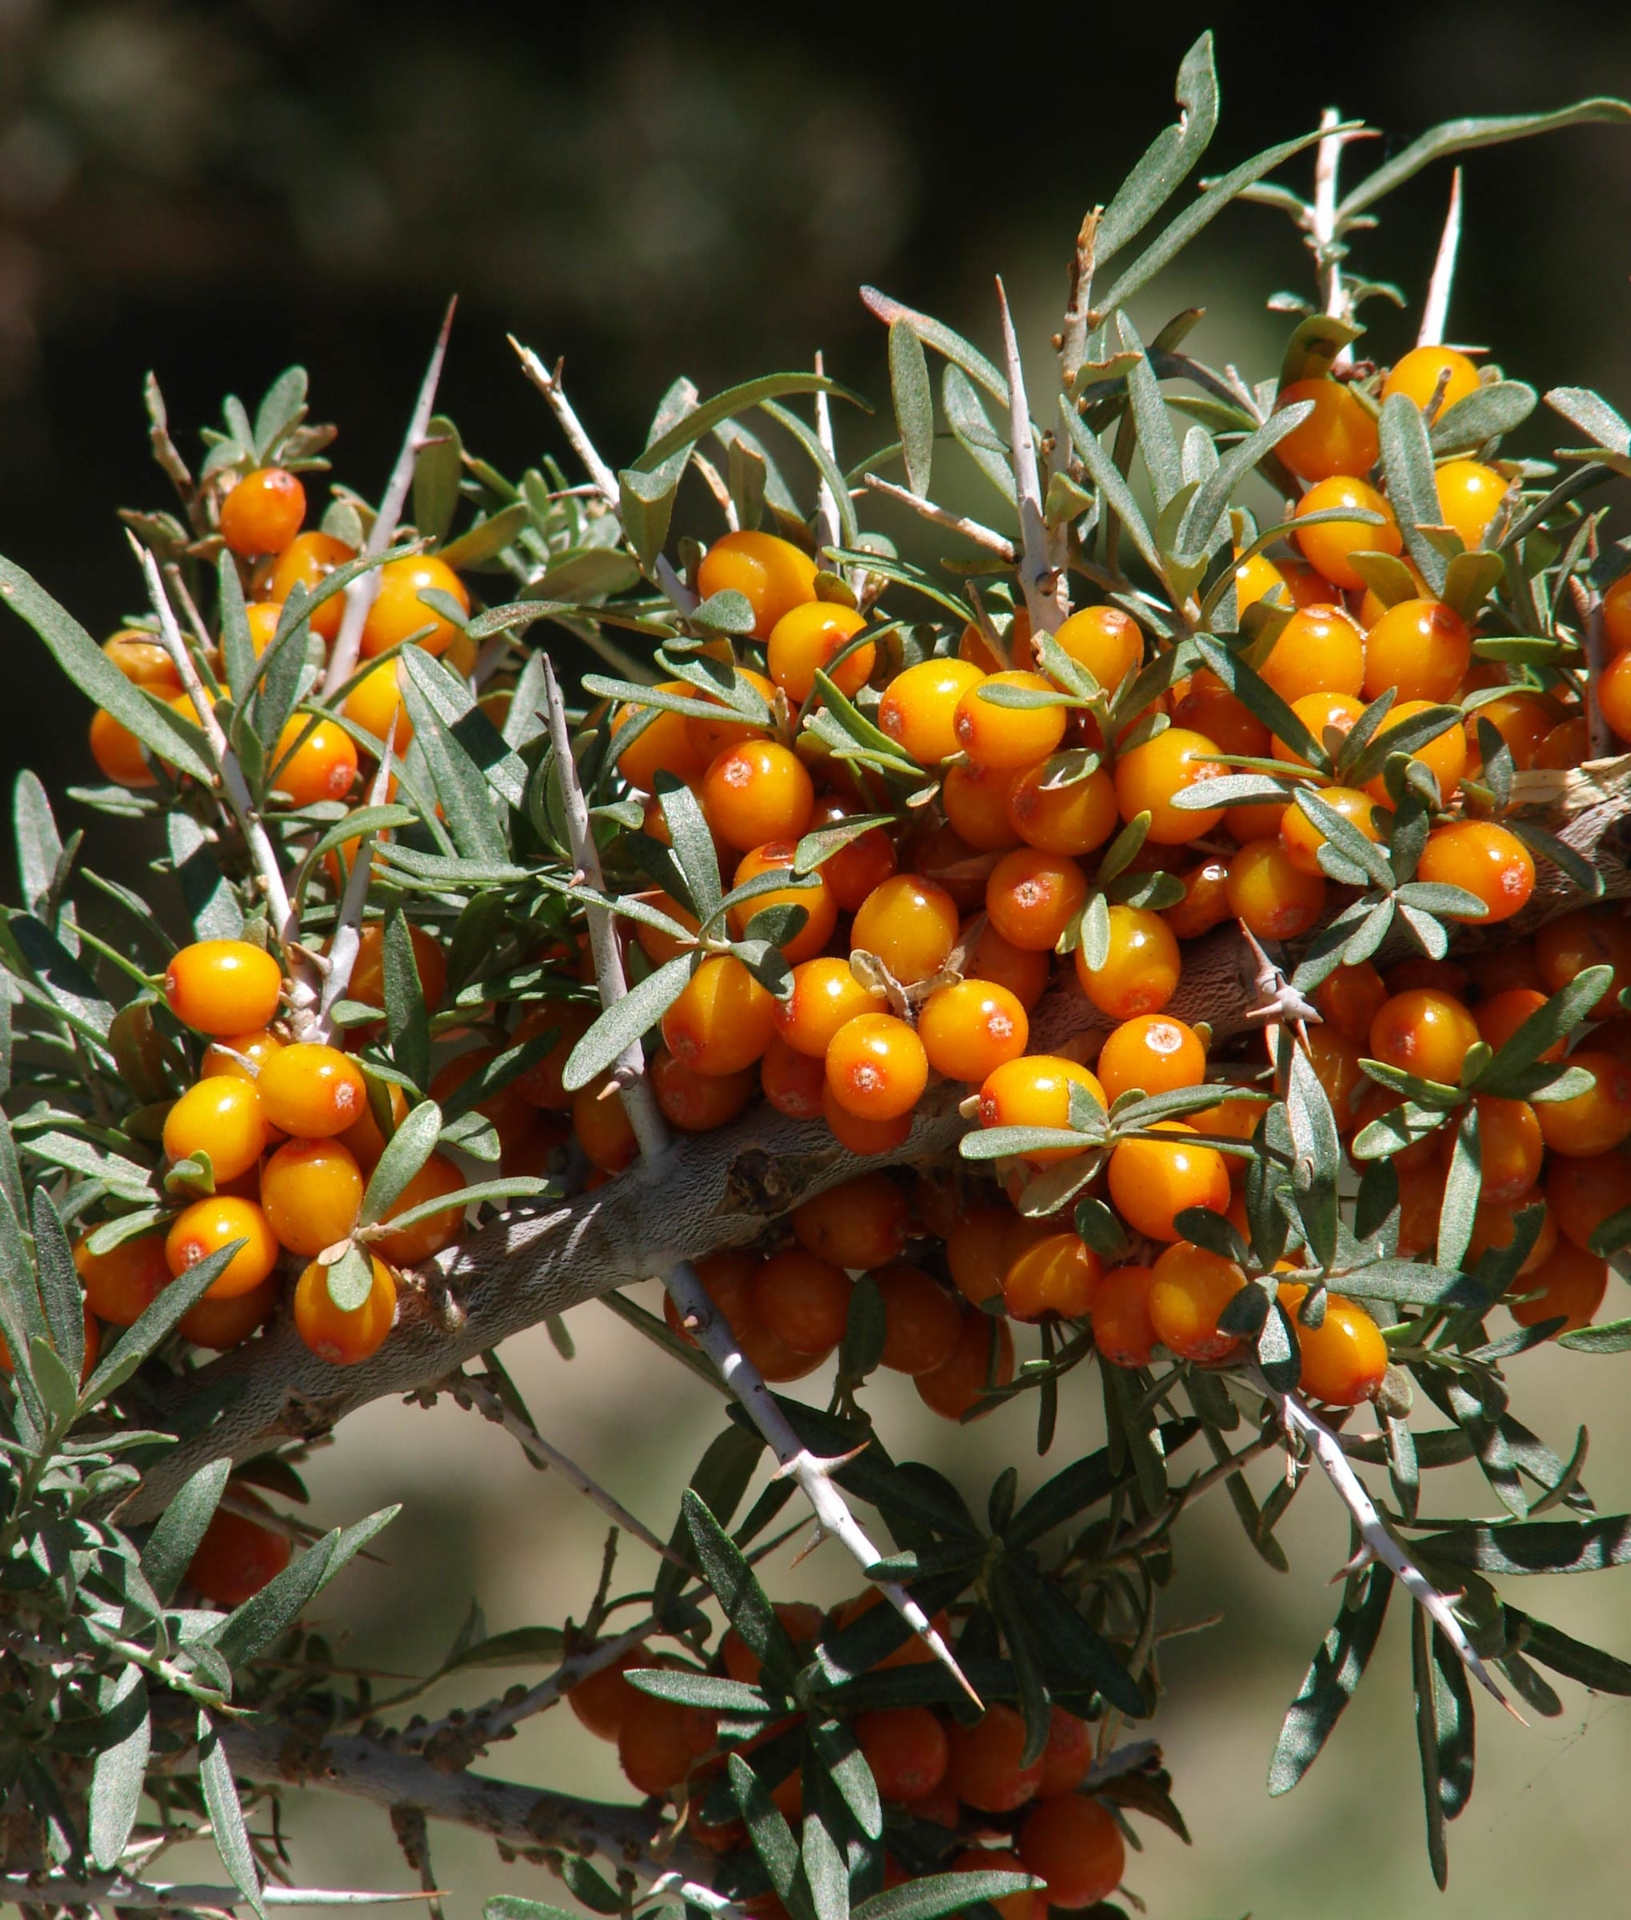 Overharvesting of sea buckthorn berries in Ladakh threatens the sea buckthorn moth, which lays its eggs on this shrub. Photo: Karunakar Rayker – CC BY-SA 2.0